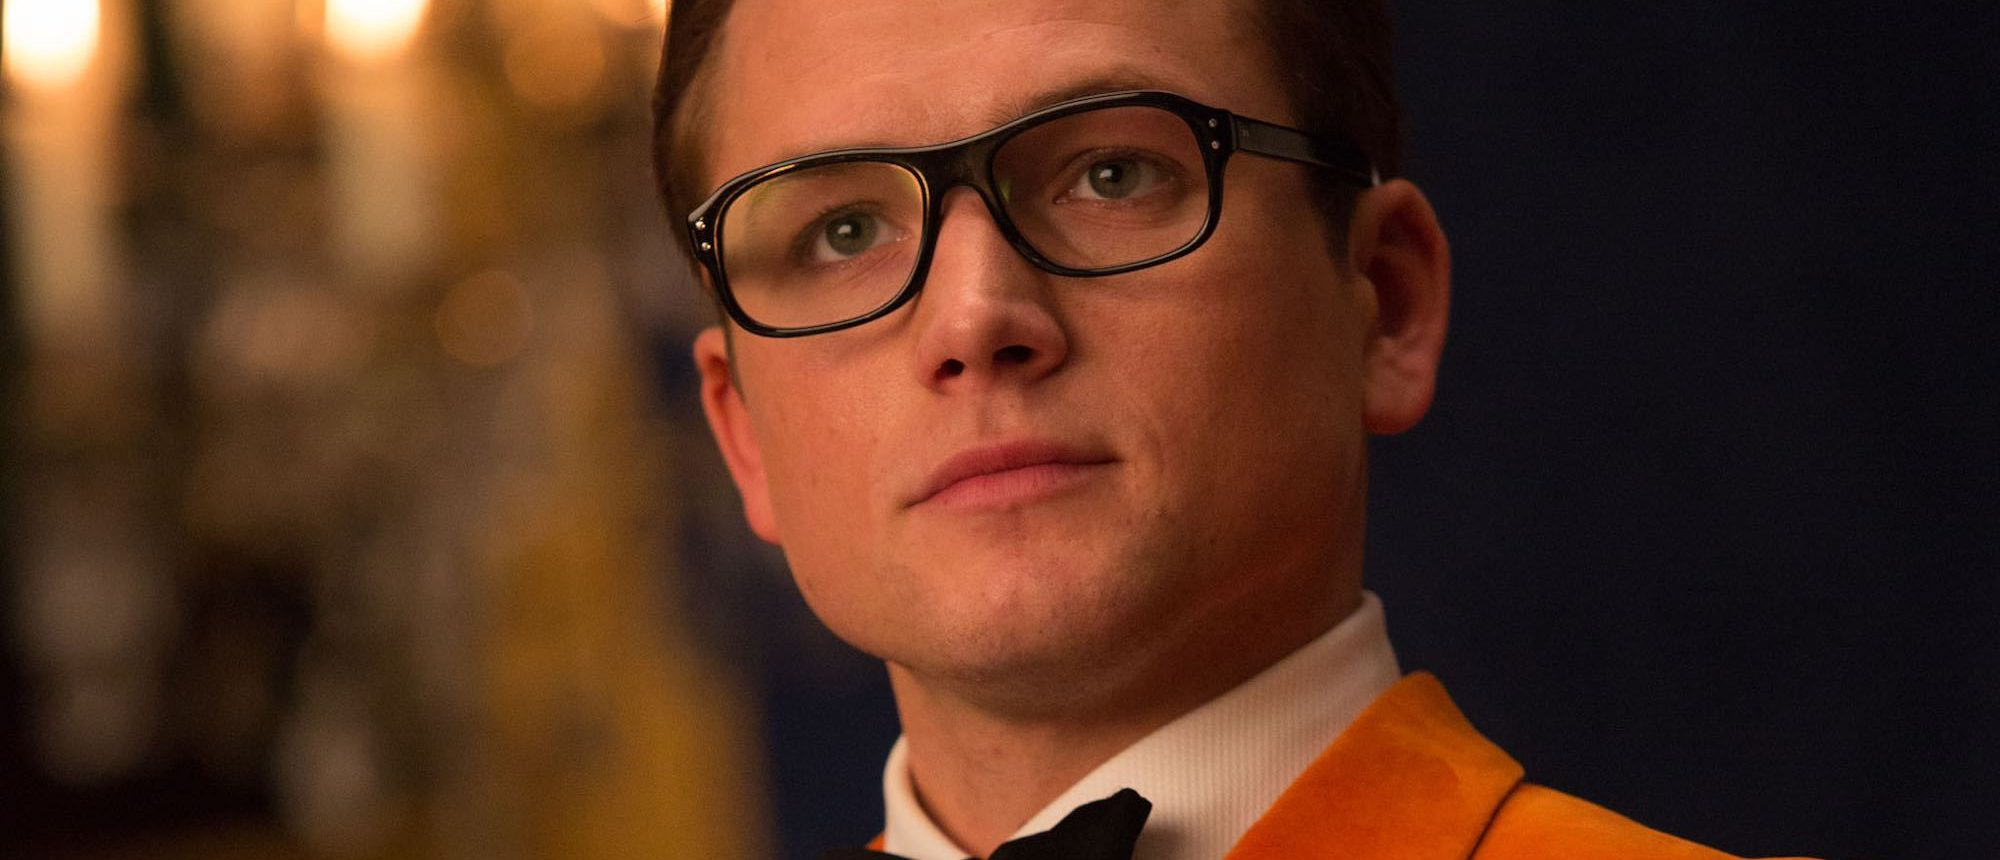 Kingsman is now a Disney franchise Disney movie franchise